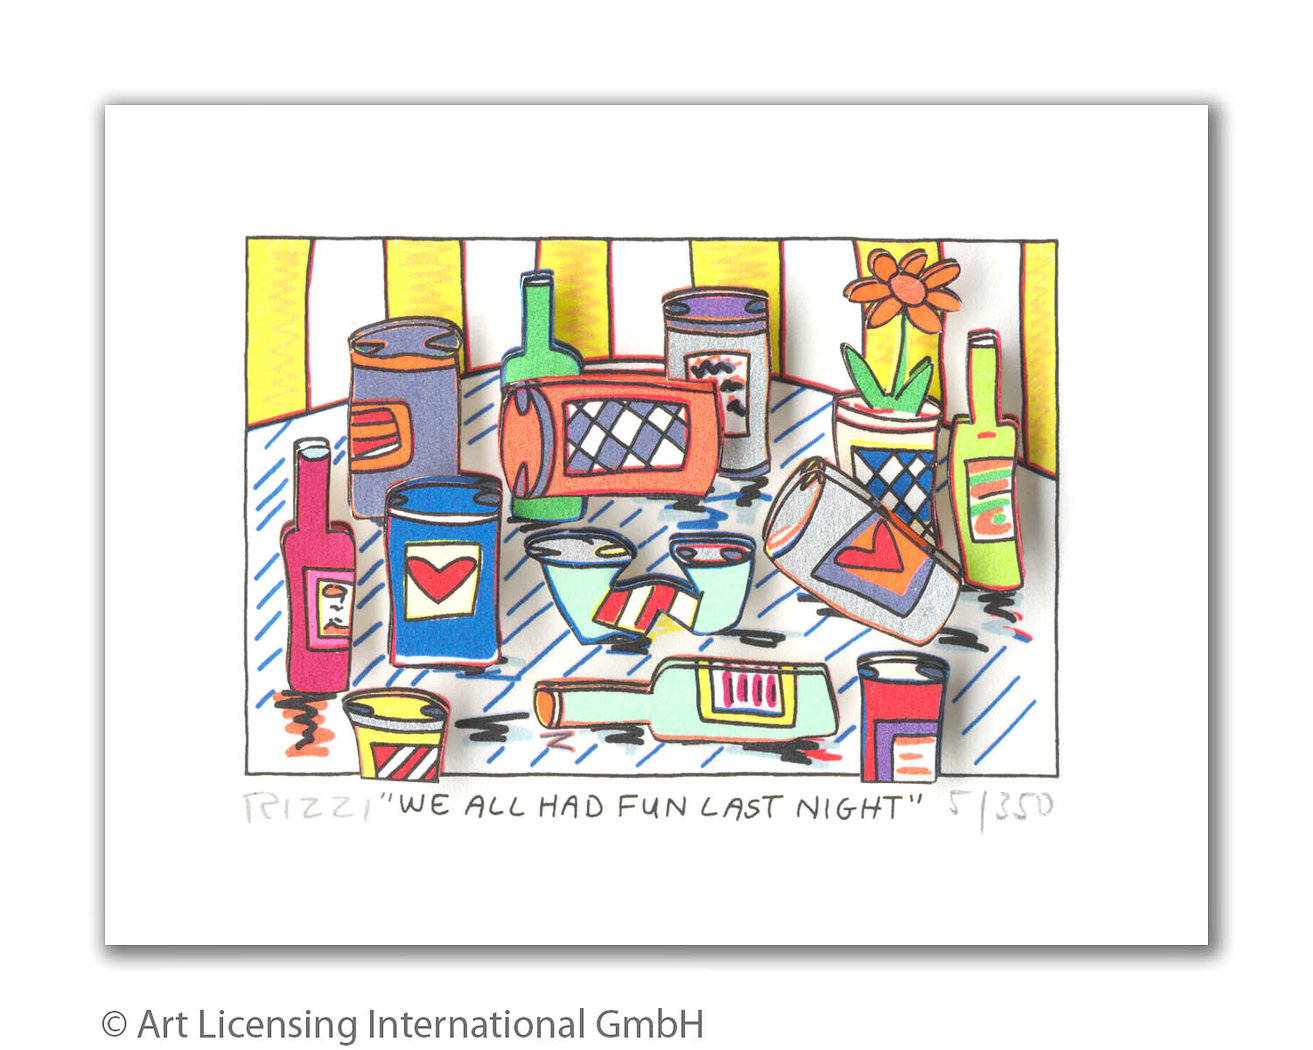 James Rizzi - WE ALL HAD FUN LAST NIGHT